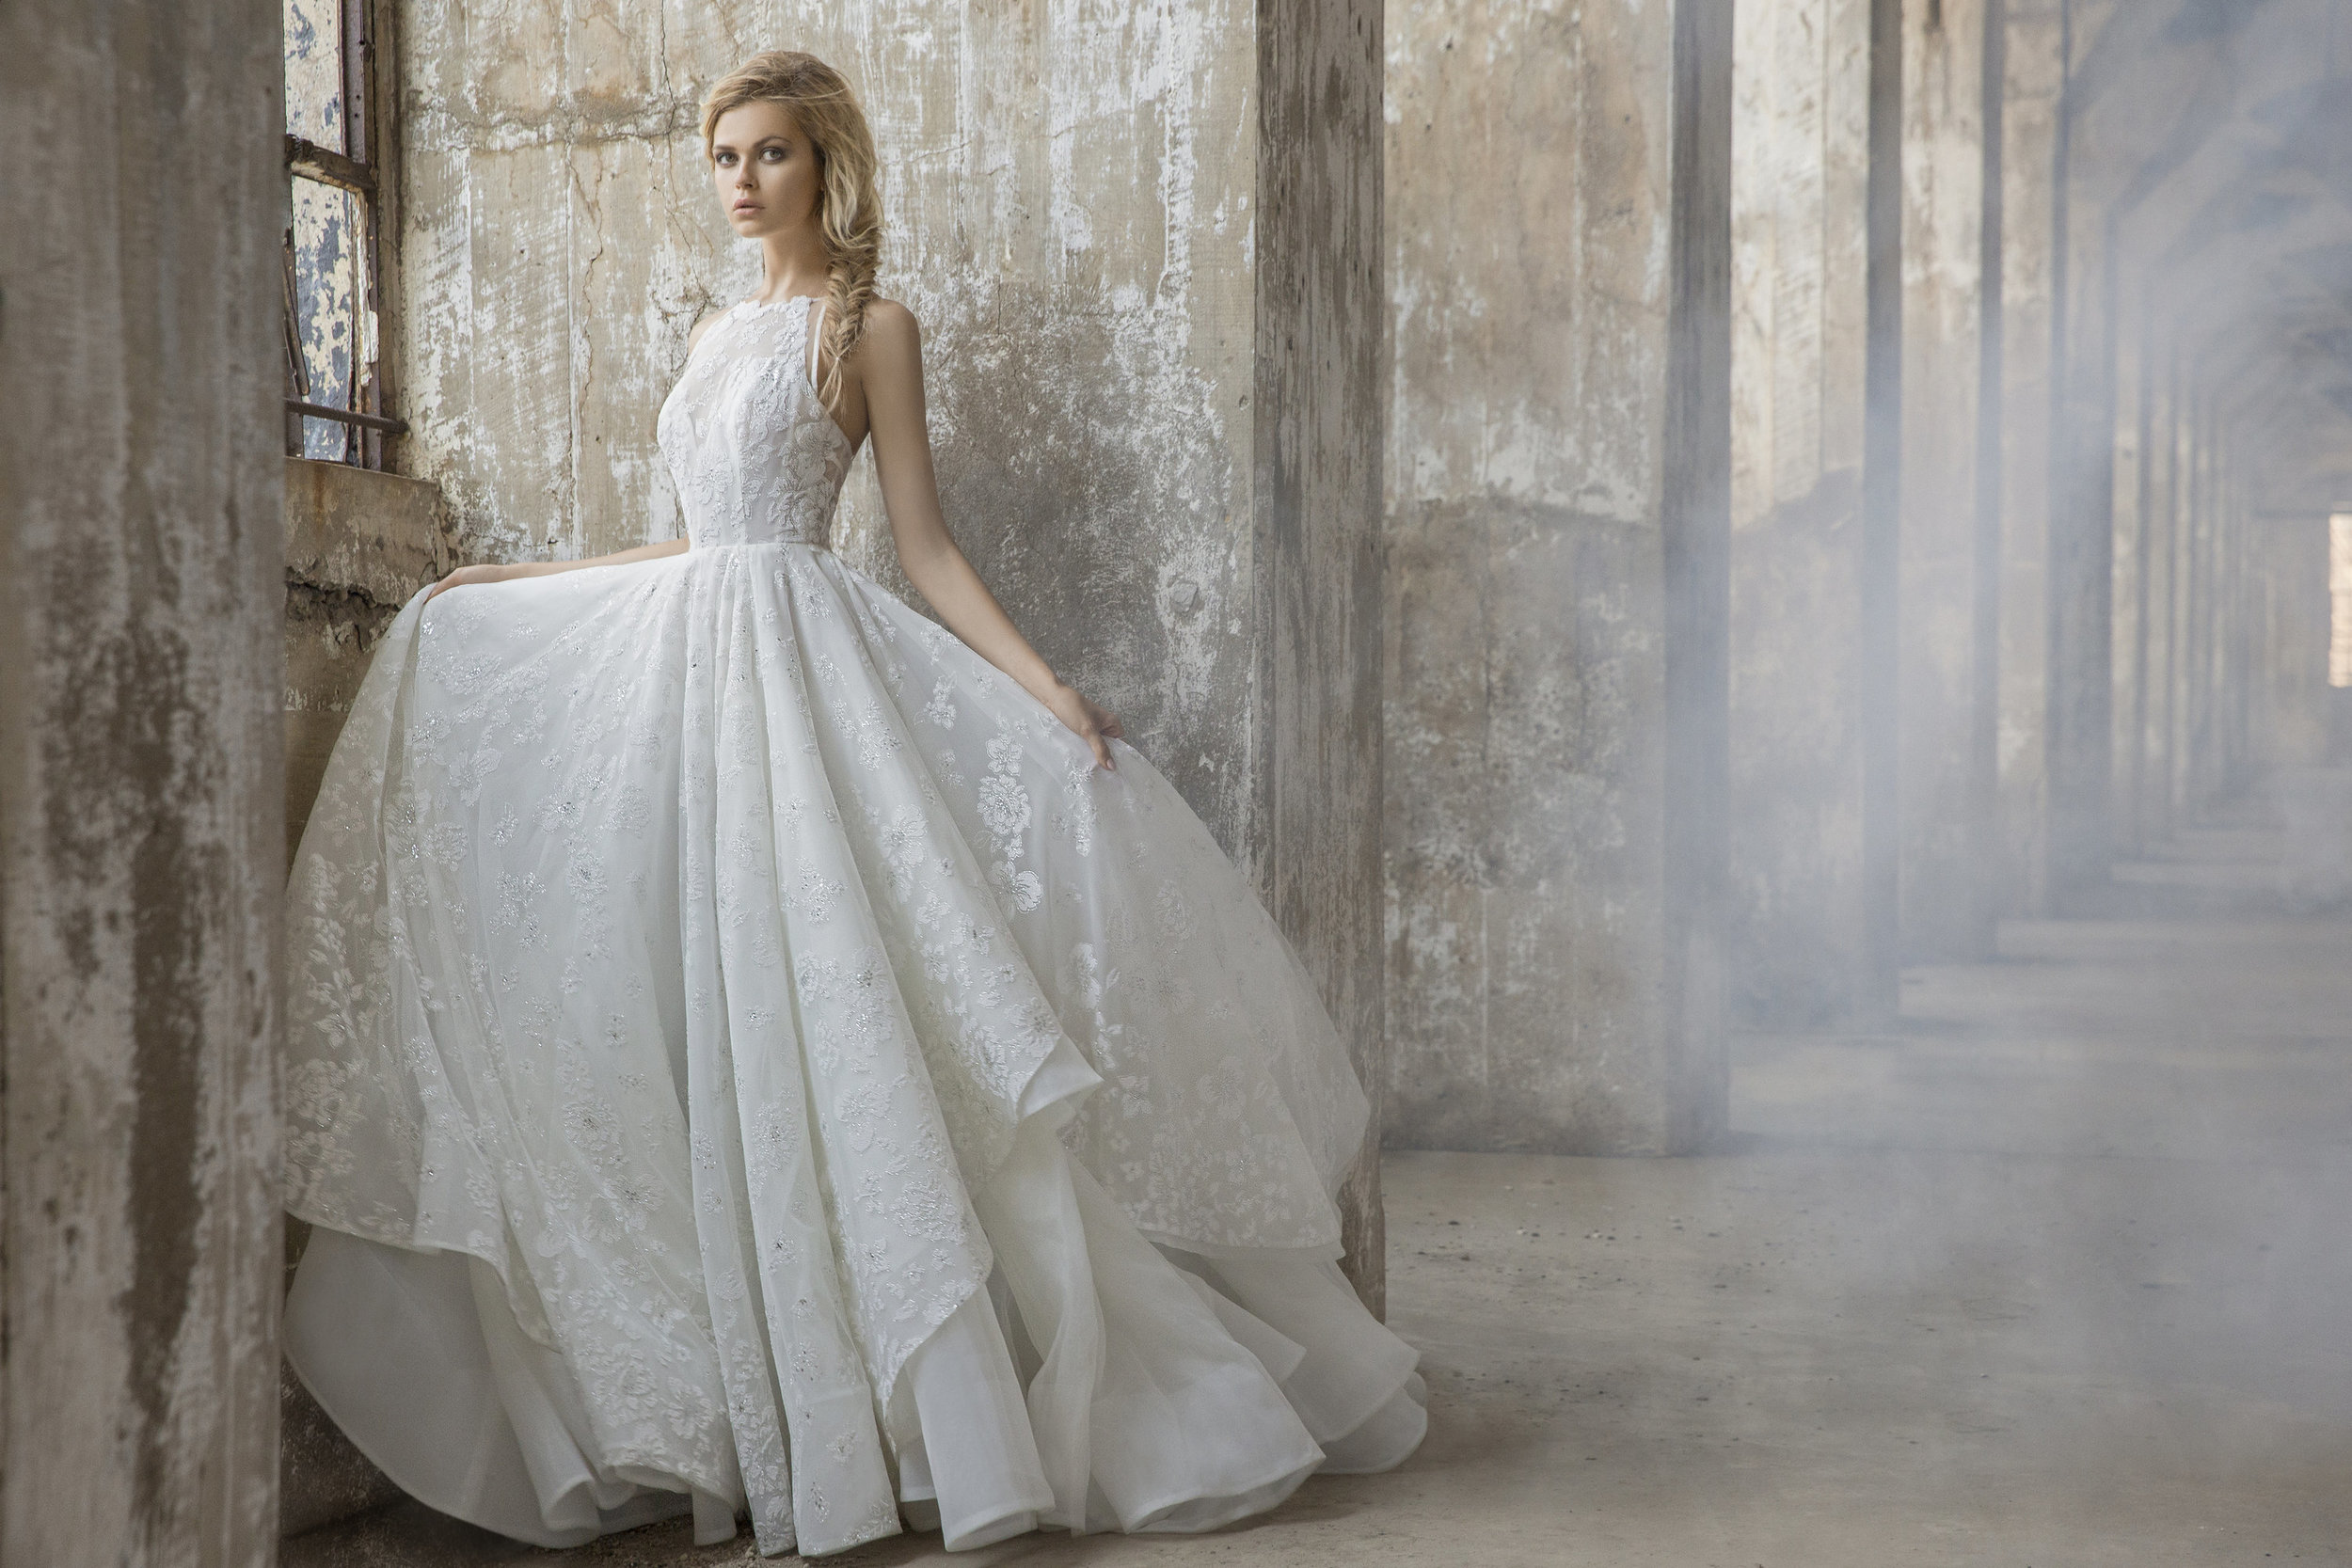 hayley-paige-bridal-fall-2017-style-6755-reagan_12.jpg